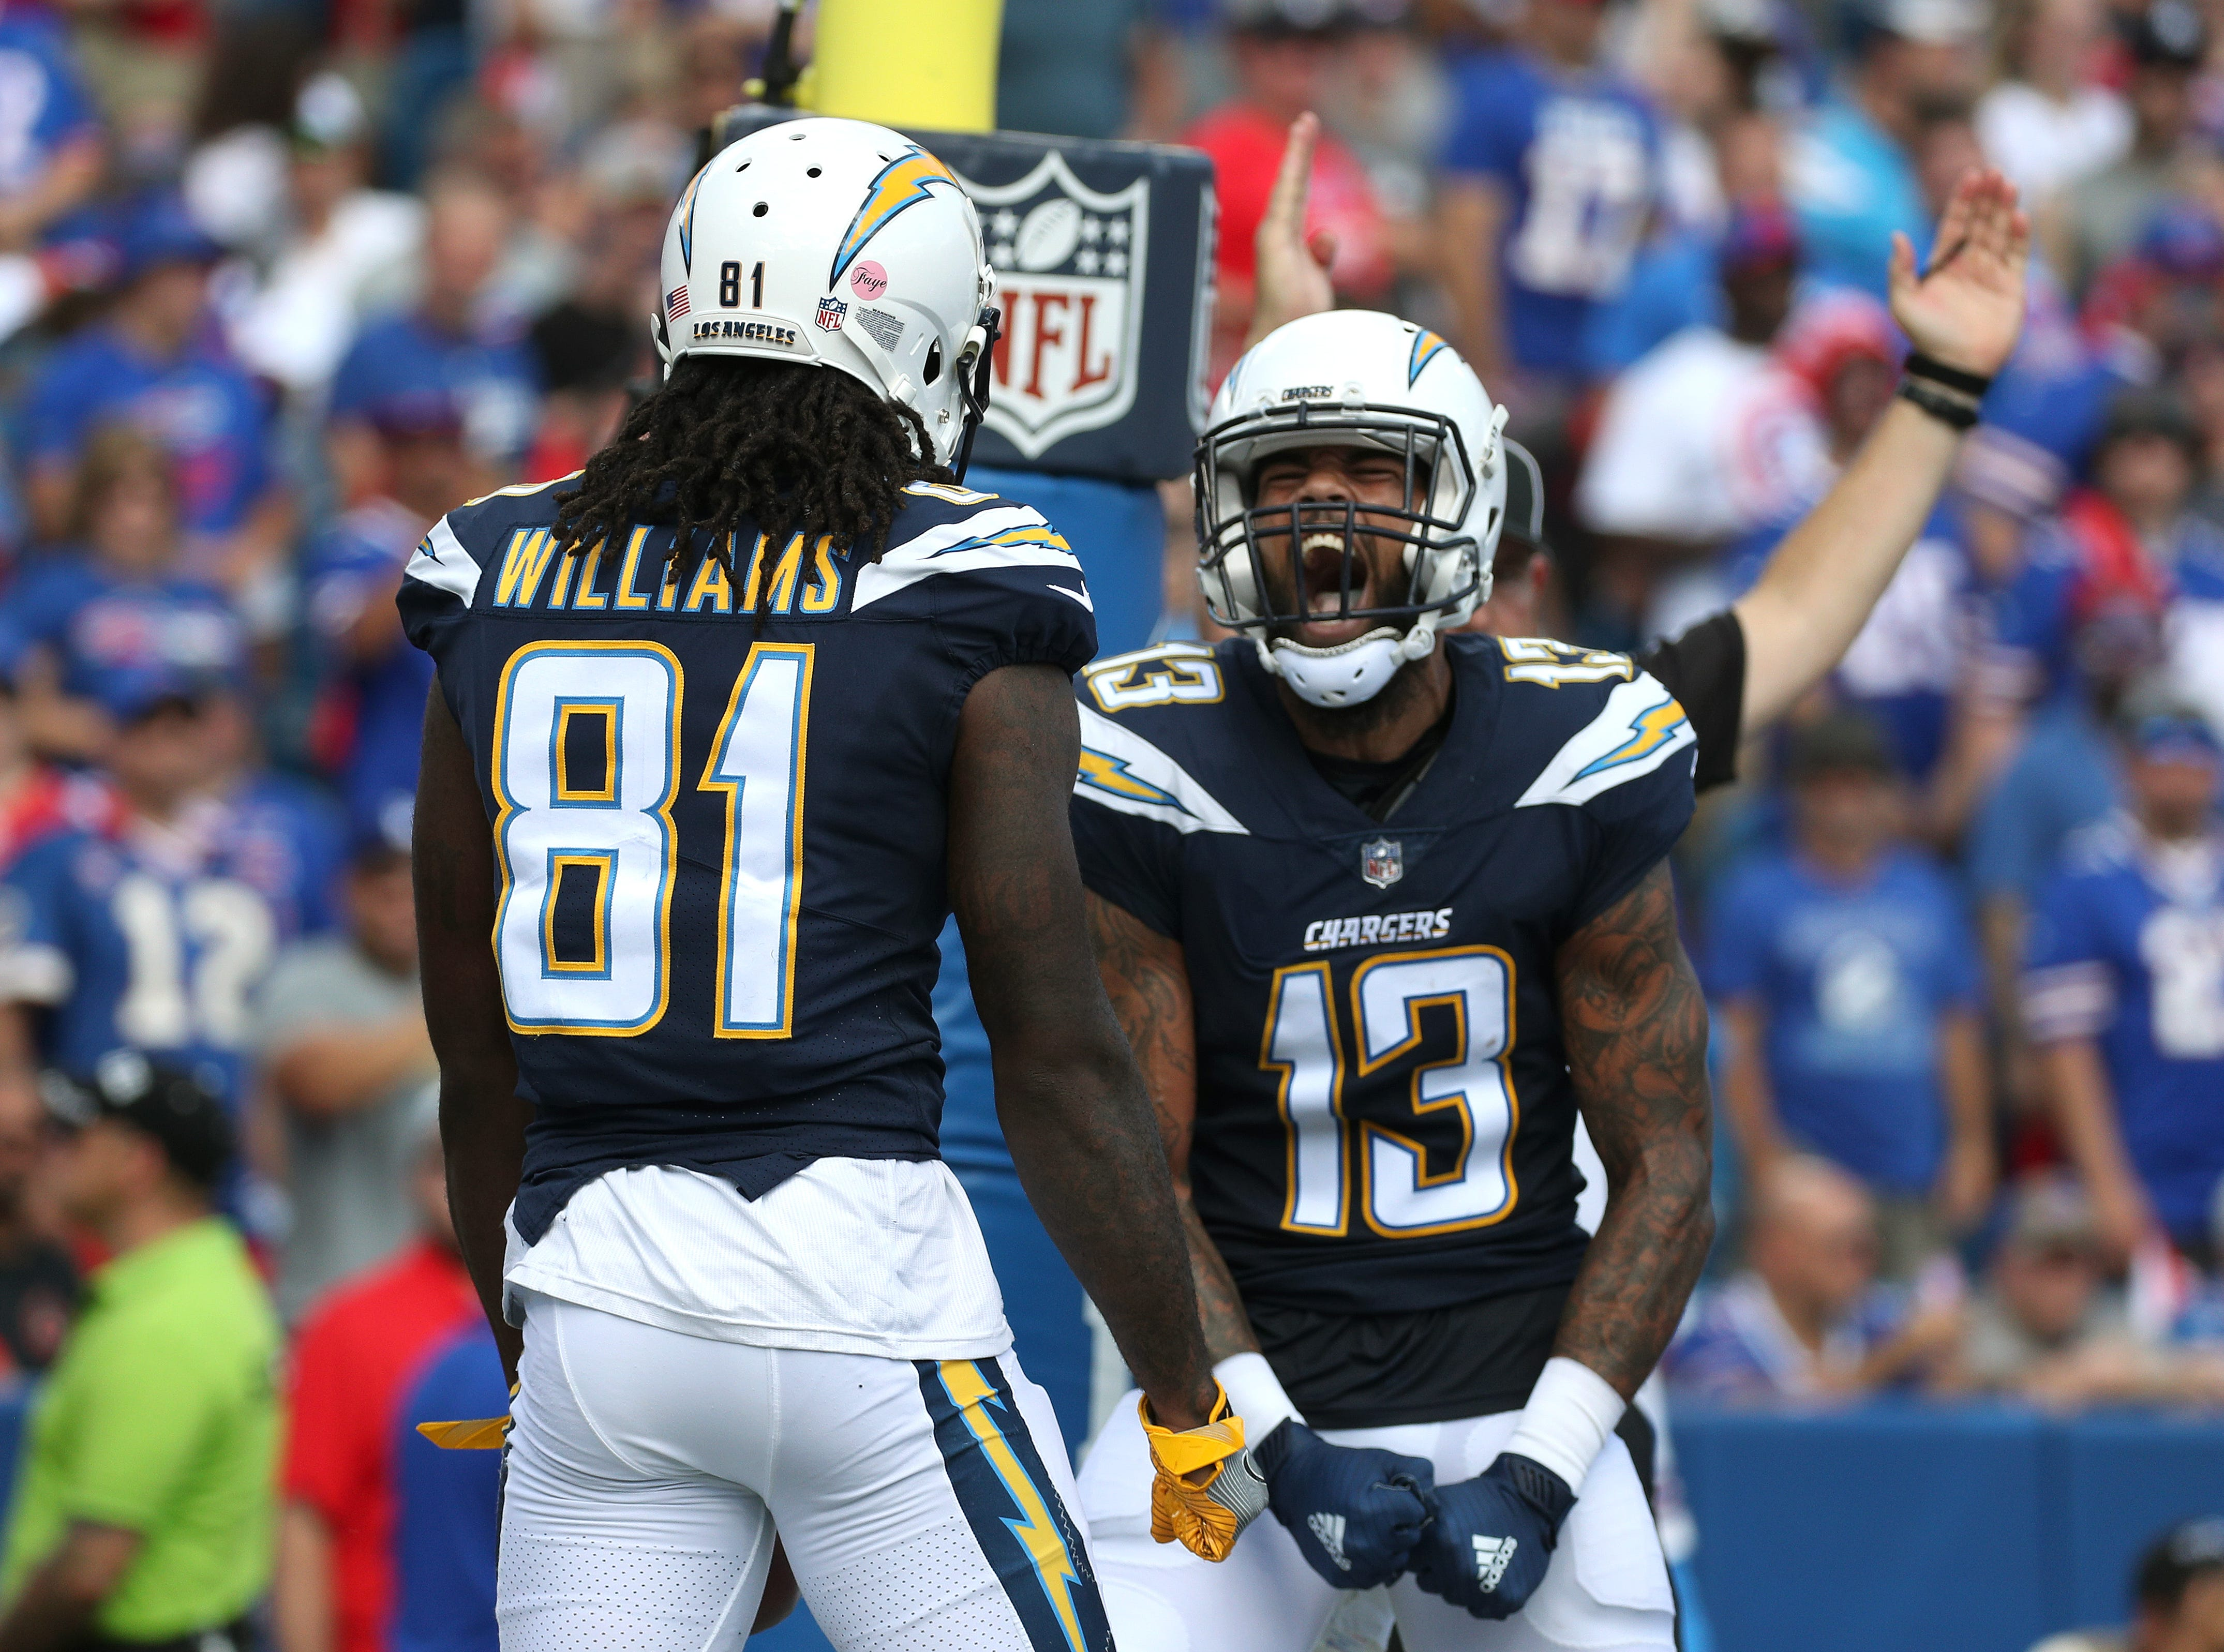 Chargers Keenan Allen celebrates Marcus Williams 10 yard touchdown reception.